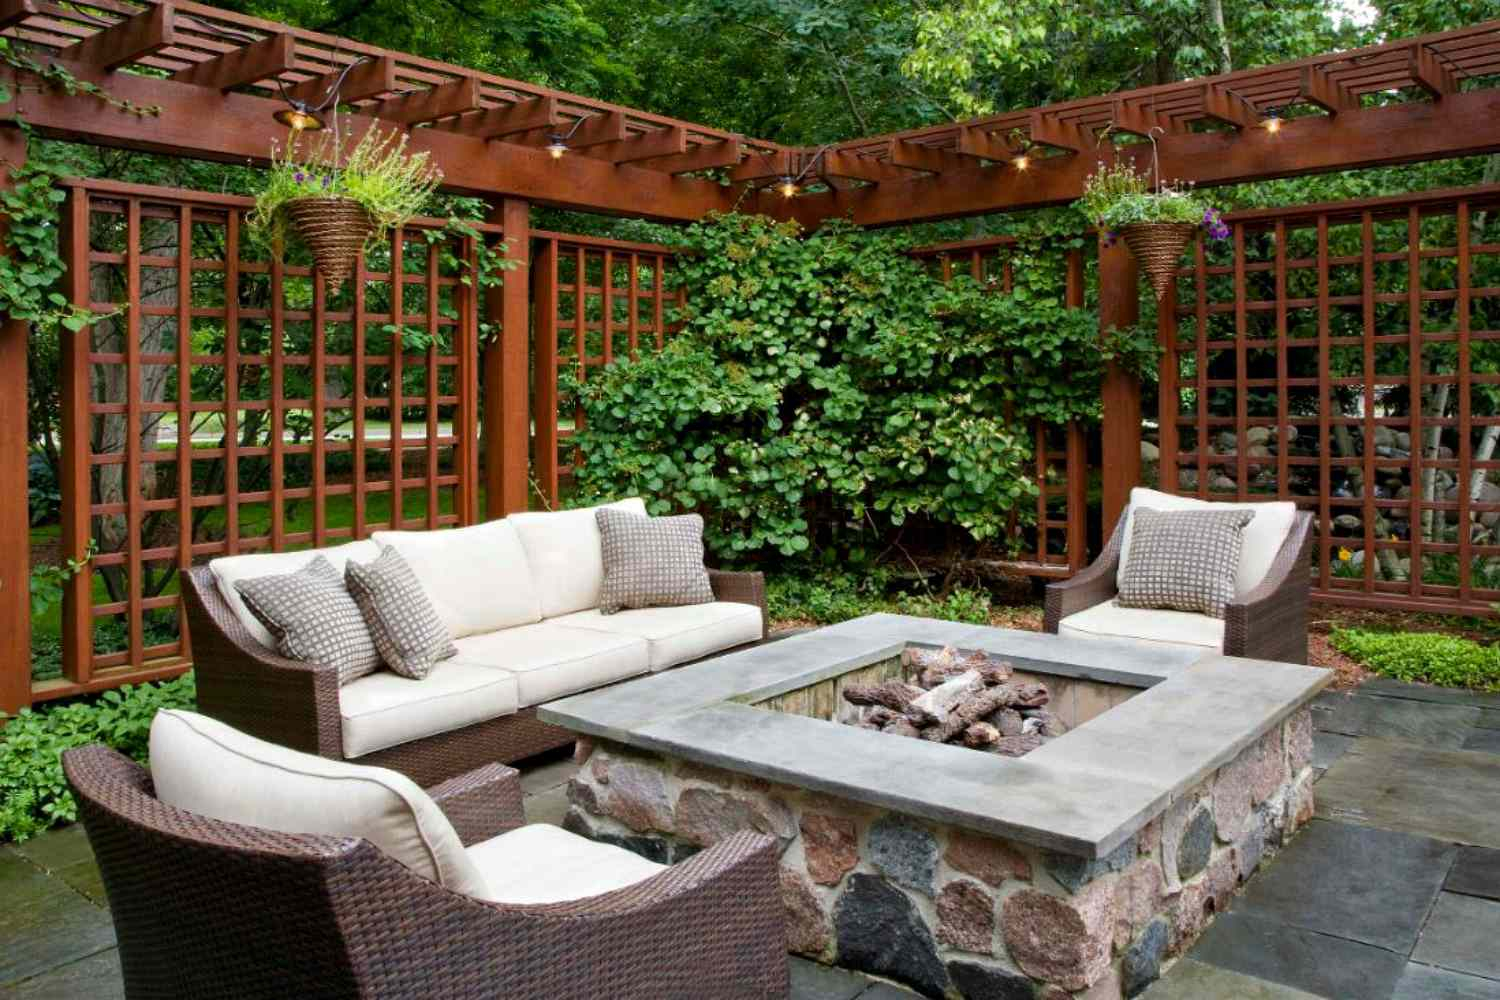 13 Ways To Gain Privacy In Your Yard within 15 Genius Concepts of How to Make Backyard Privacy Wall Ideas